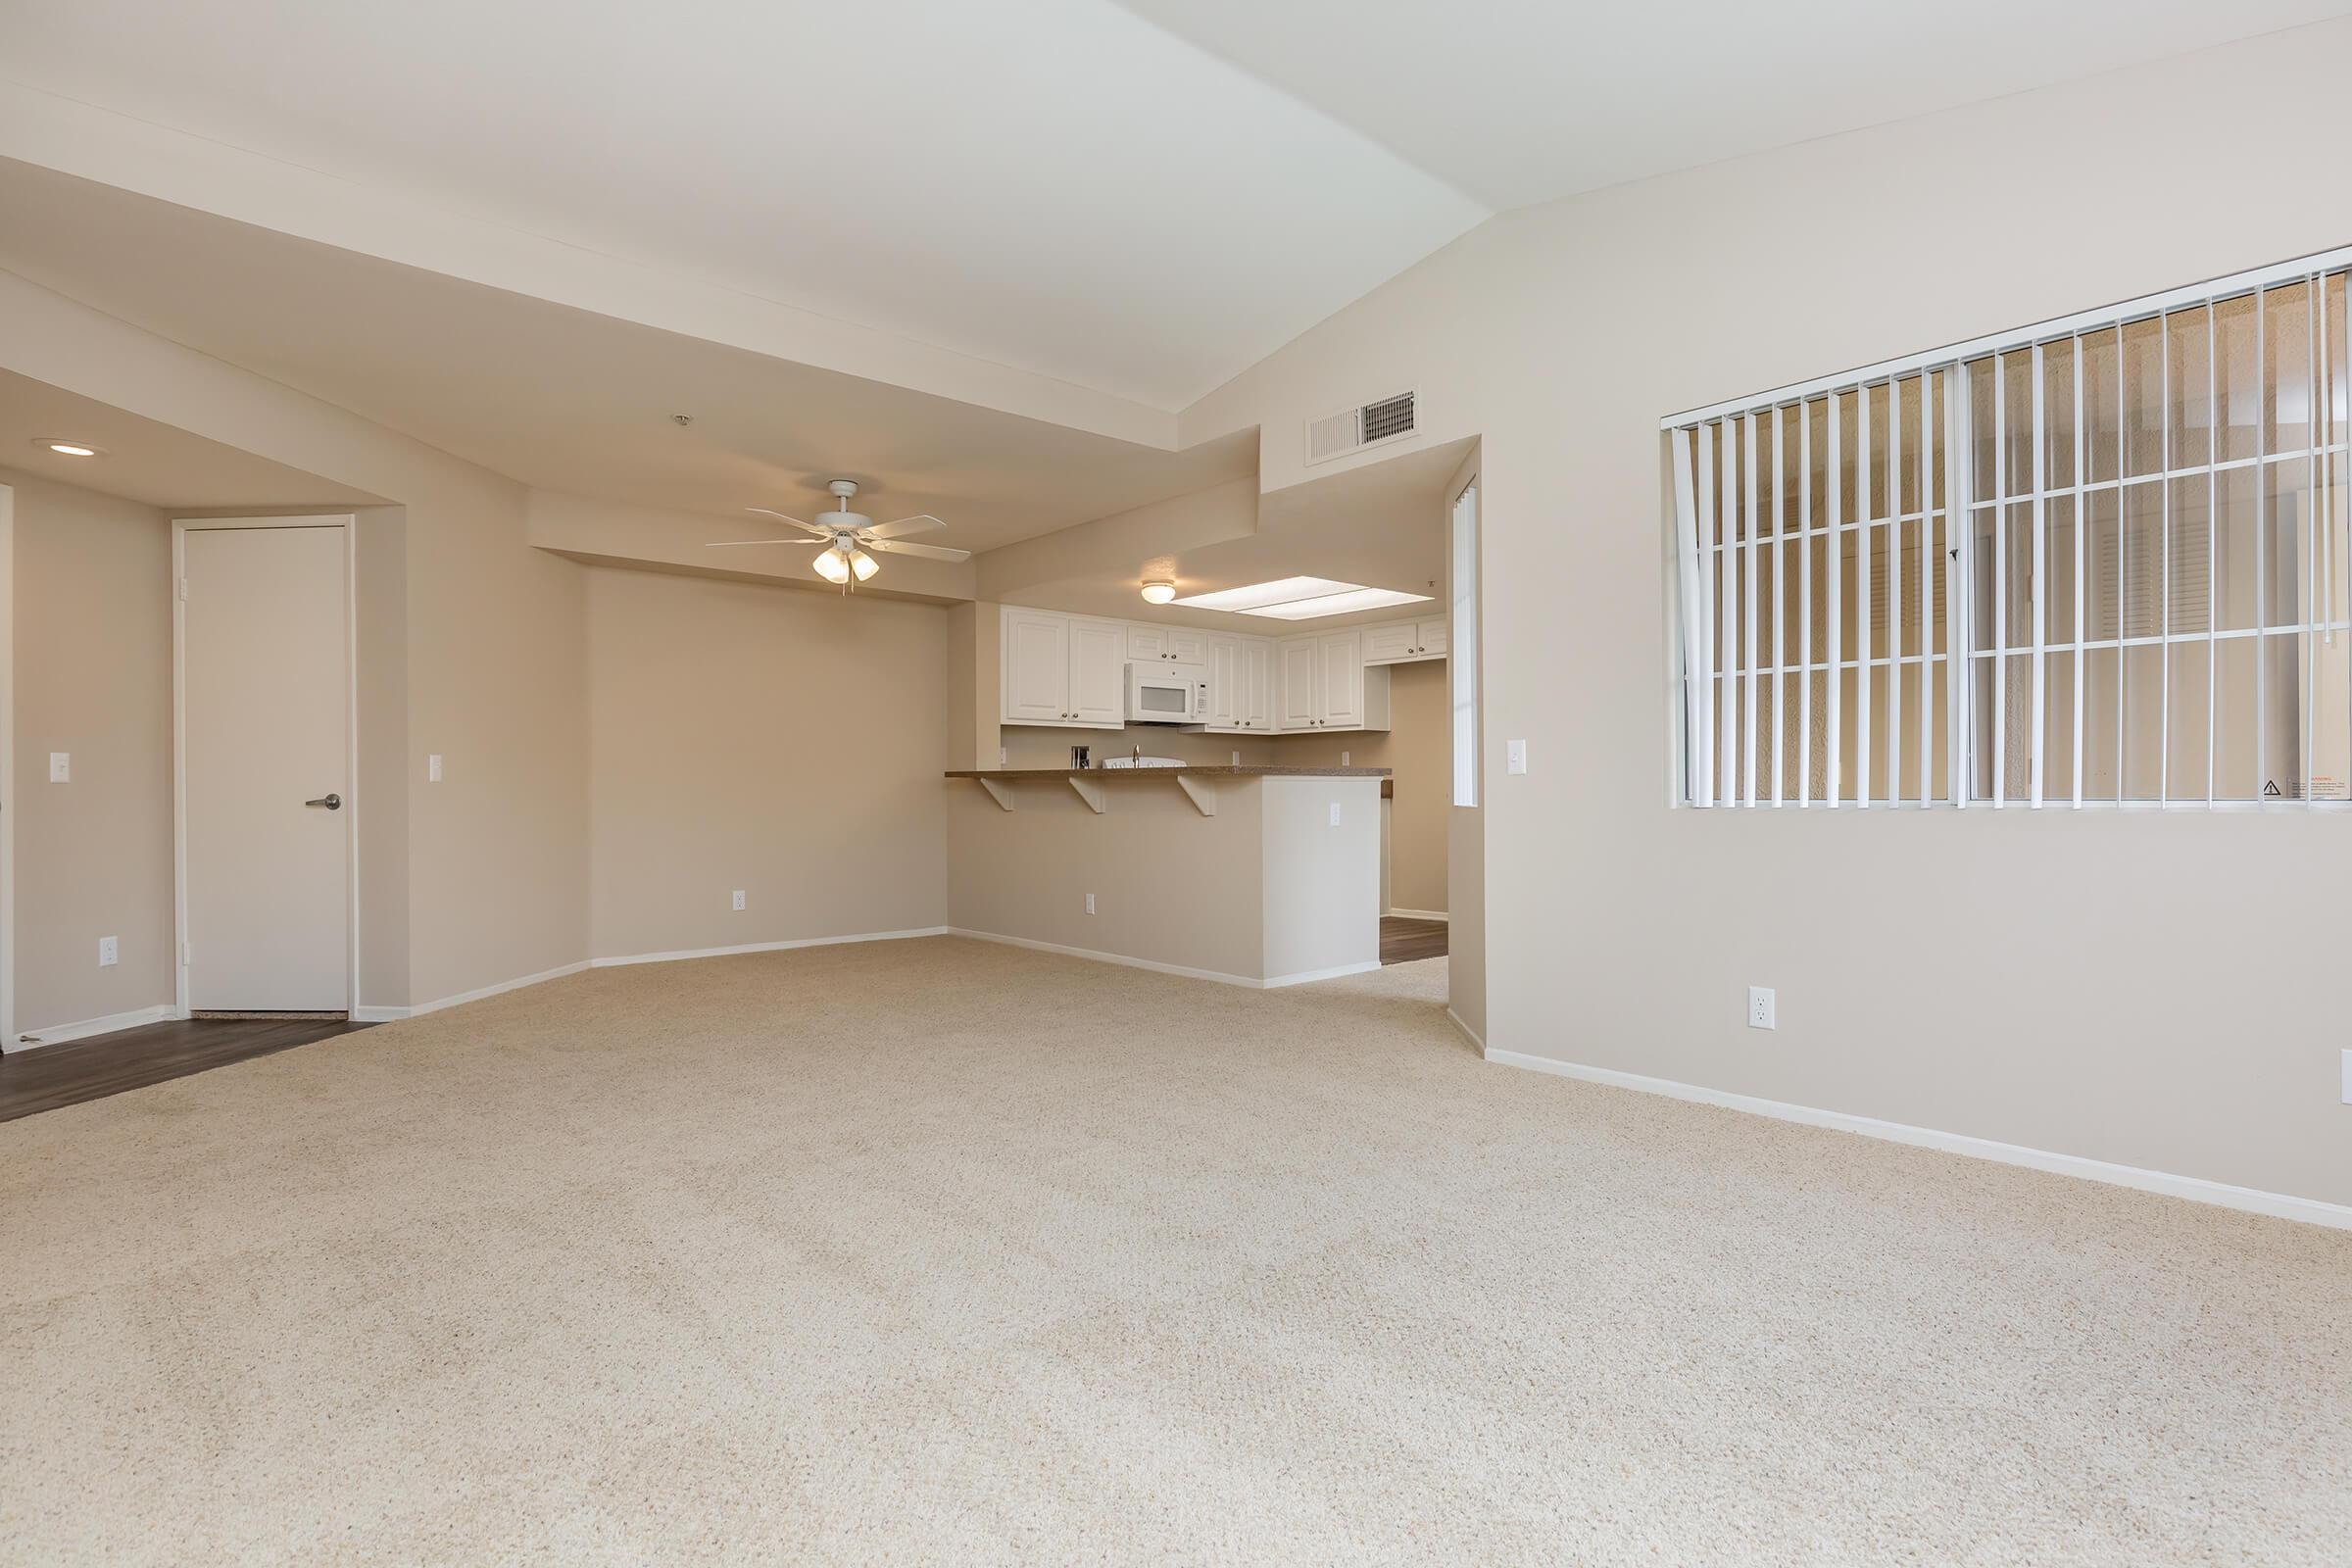 Dining room and living room with carpet